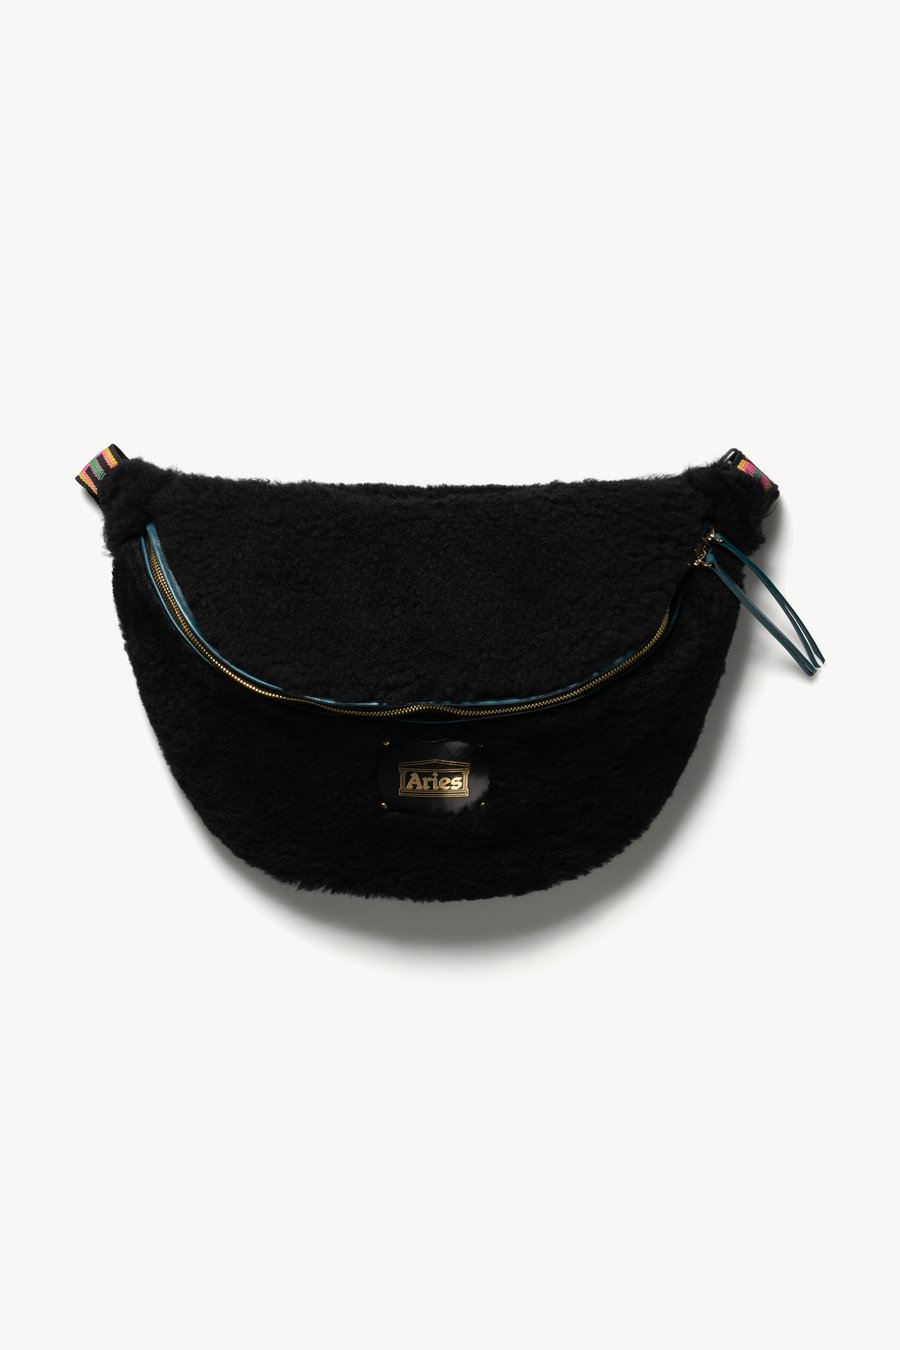 Elis Sheepskin Bag by Aries, available on ariesarise.com for $720 Emily Ratajkowski Bags Exact Product